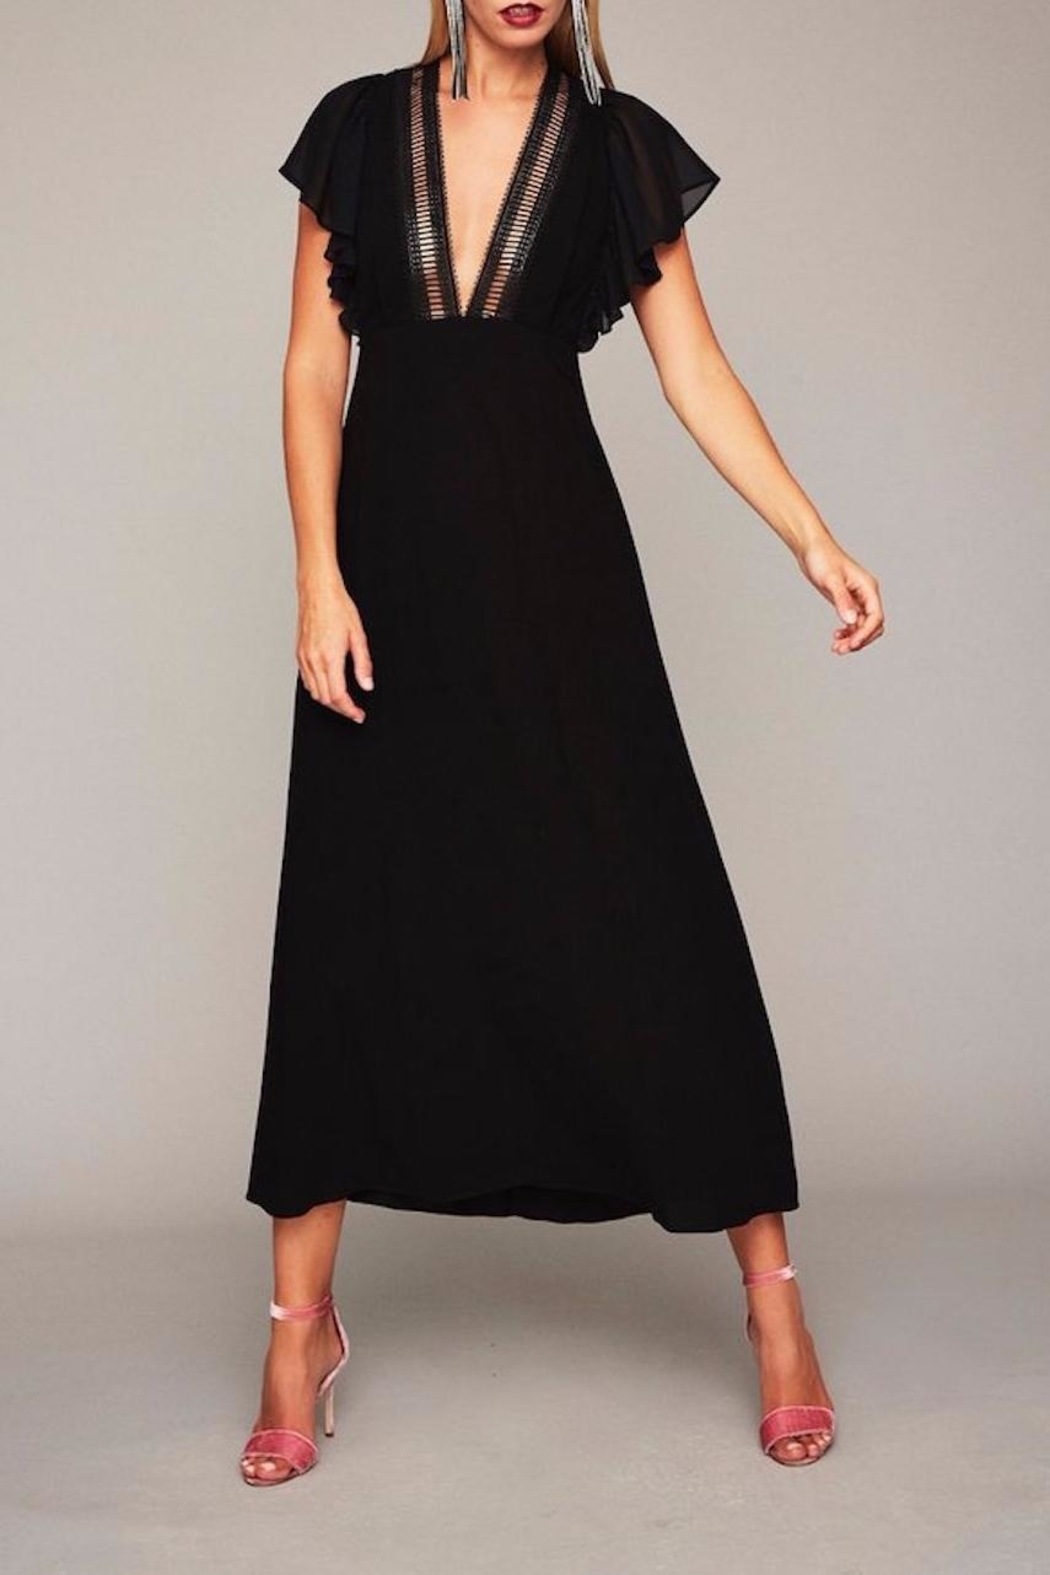 Stone Cold Fox Plunging Black Gown - Main Image